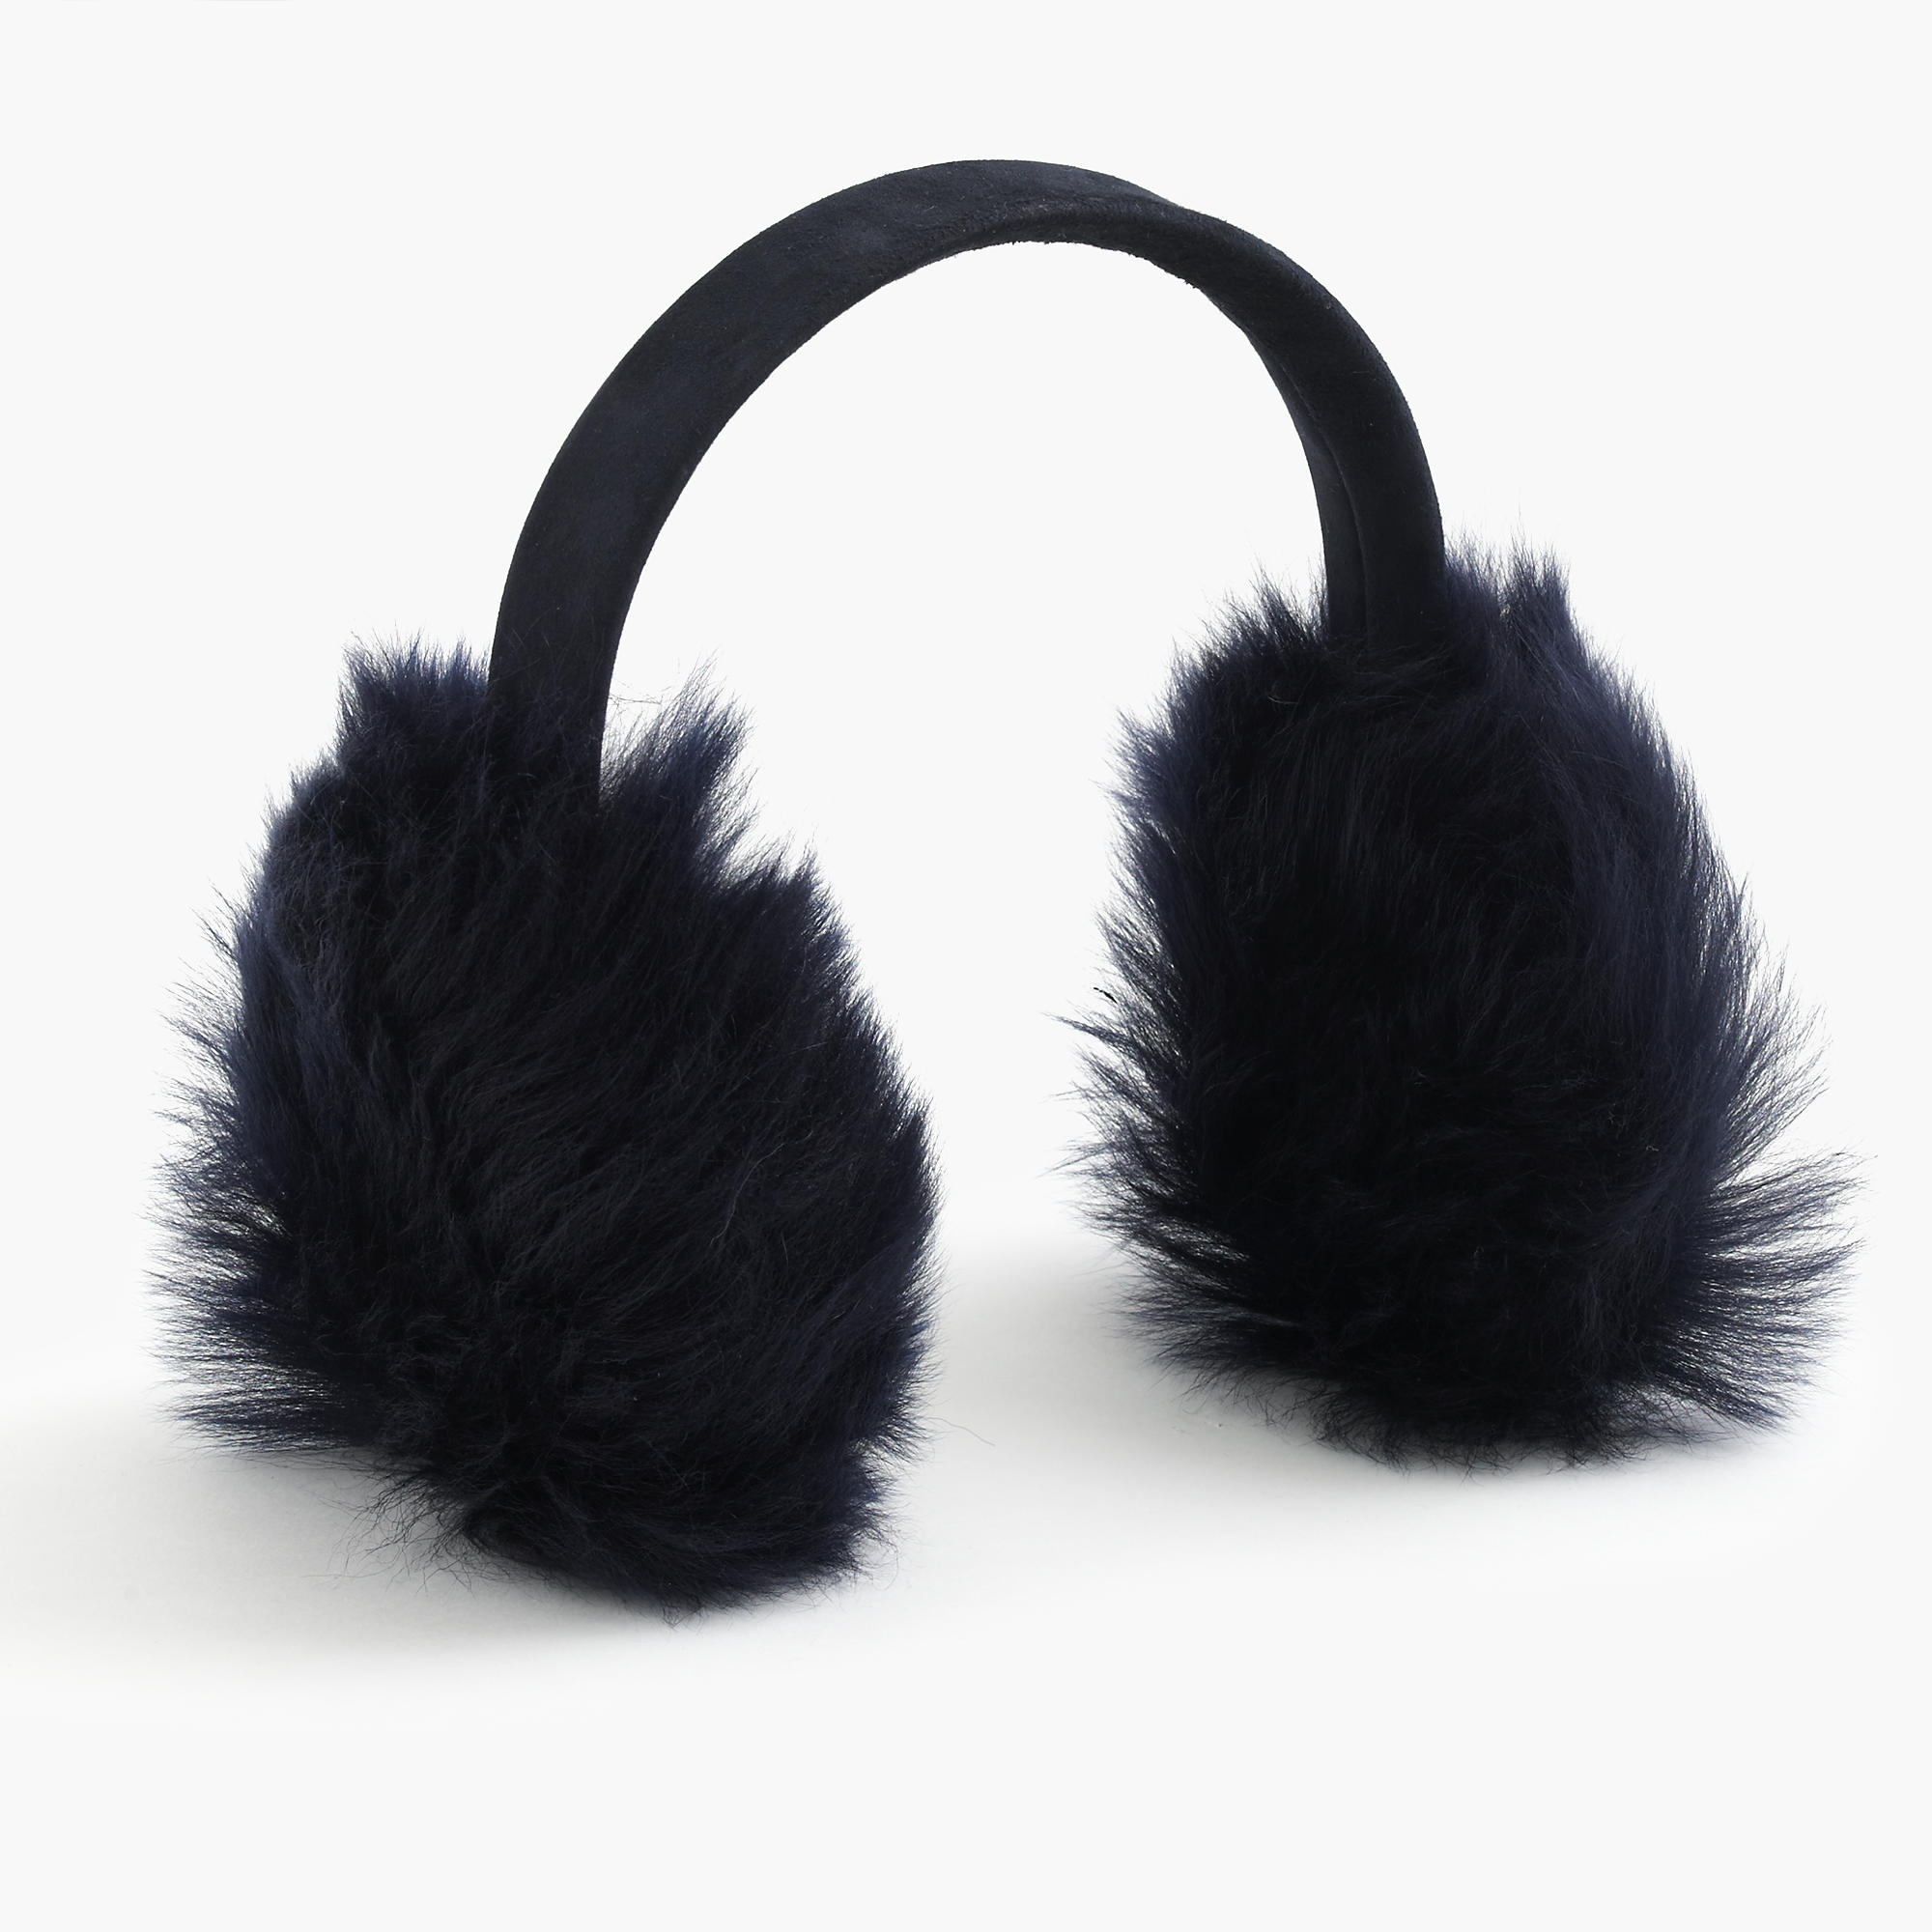 shearling-ear-muffs-jcrew-toscana